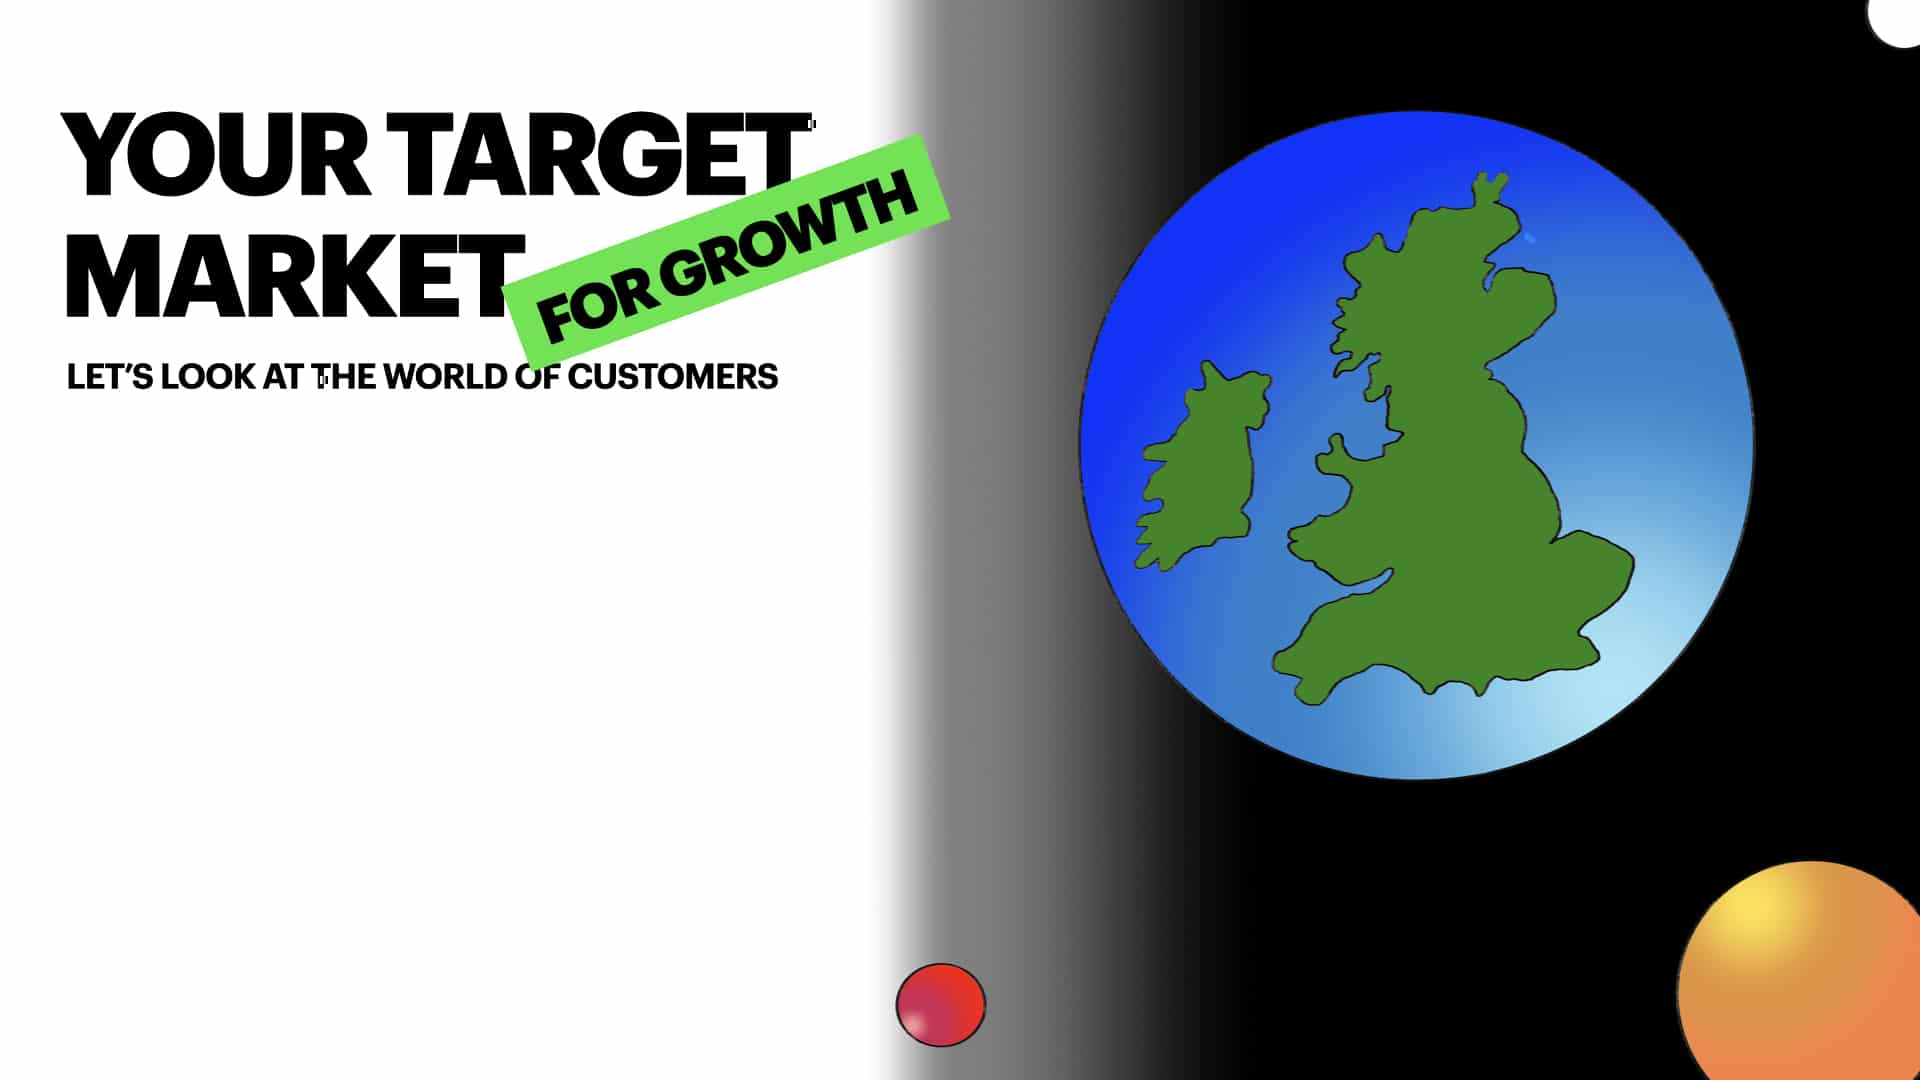 small business target market process by Marc Ford business coach